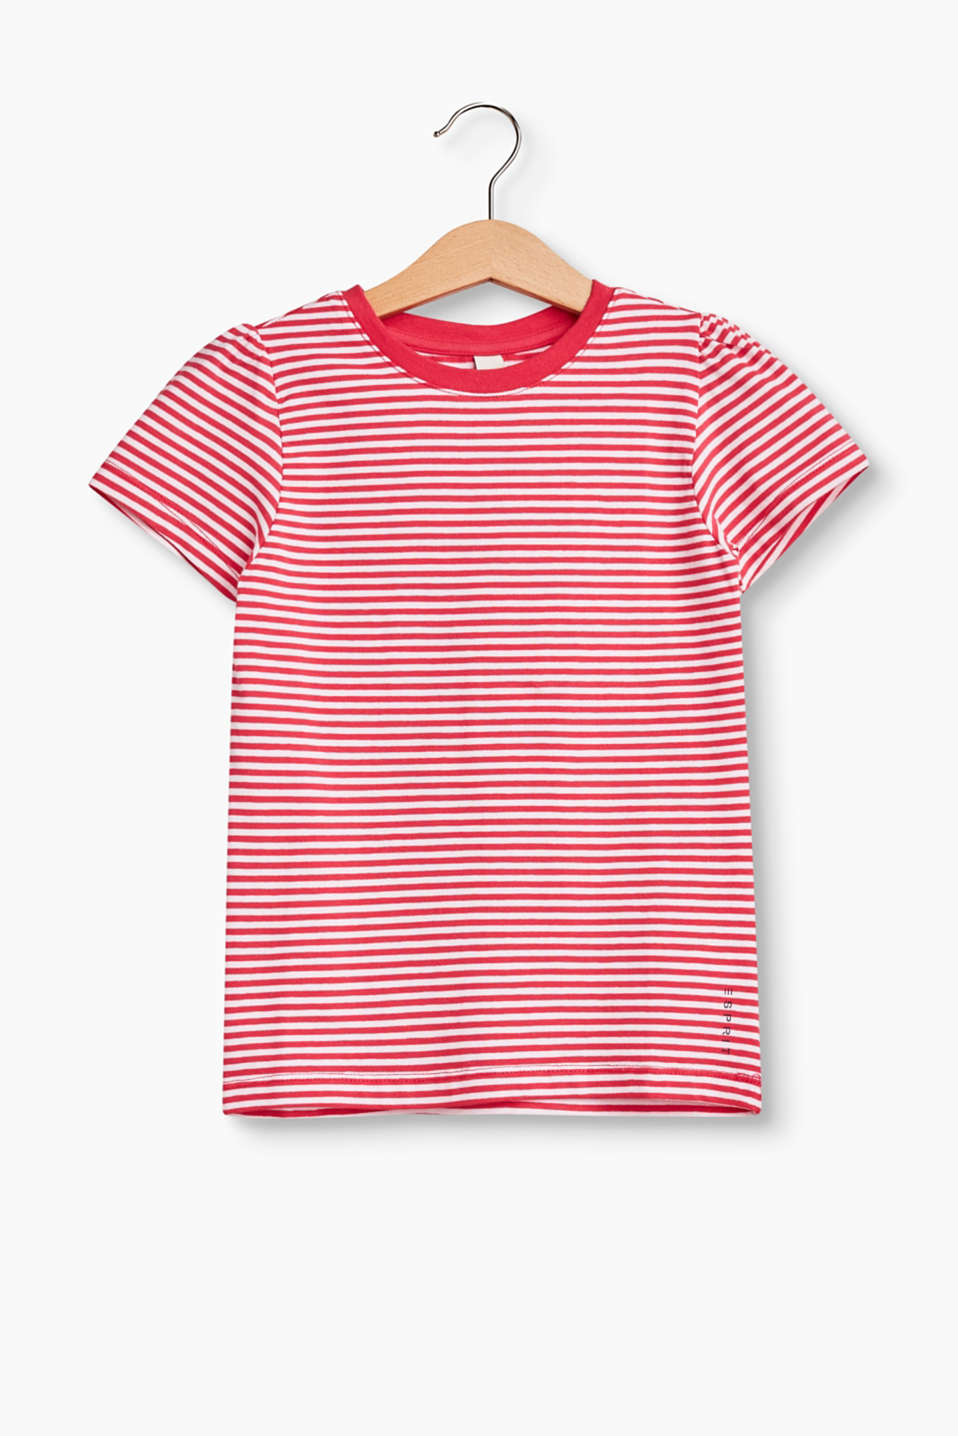 This T-shirt with a cheerful striped design and gathered sleeve joins is a wonderfully versatile basic piece.